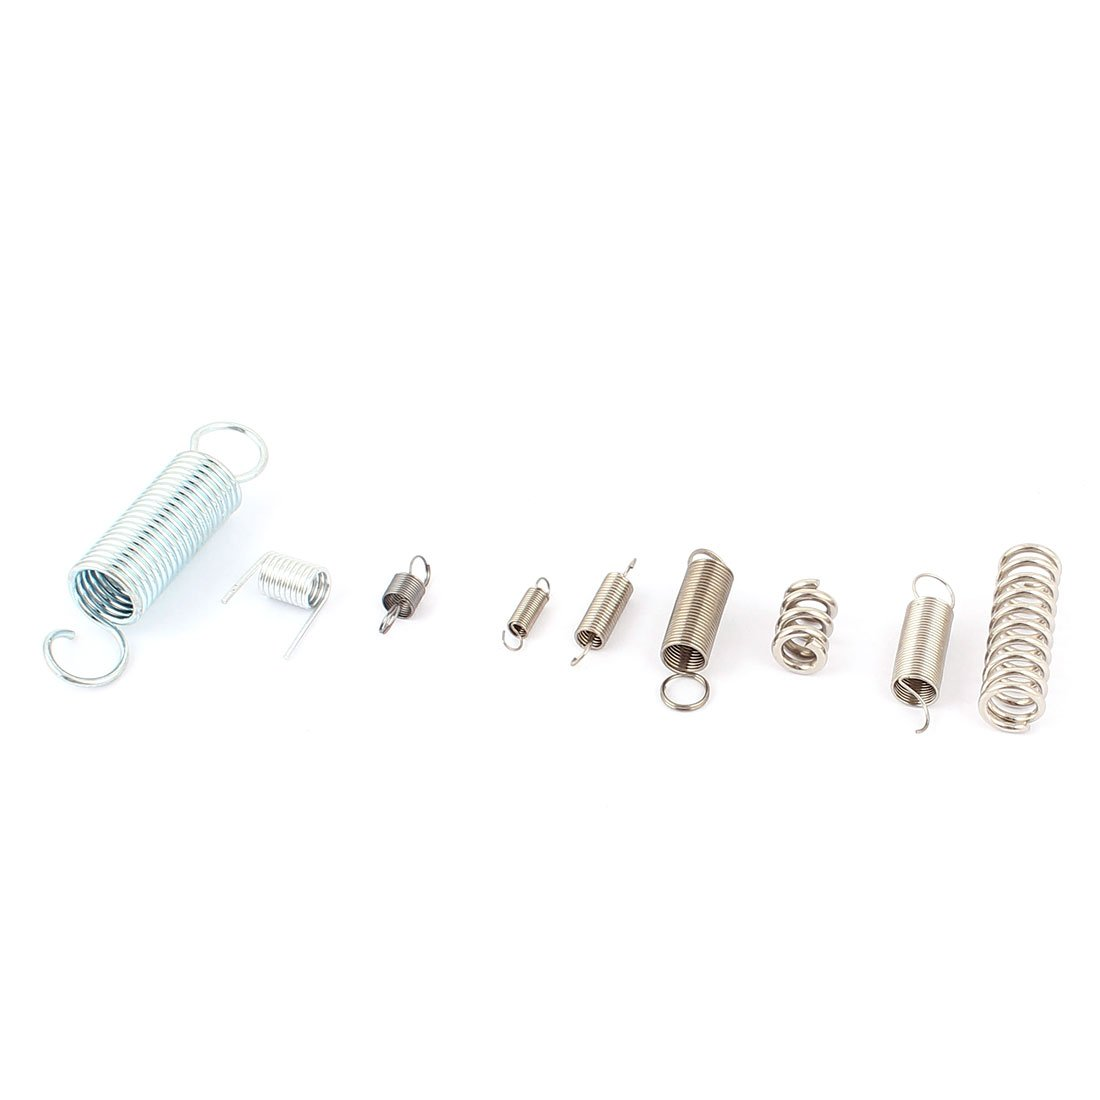 Threaded Screw M6-1.0 Thread Pitch Quickun 304 Stainless Steel Fully Thread Rod Pack of 1 25mm Length